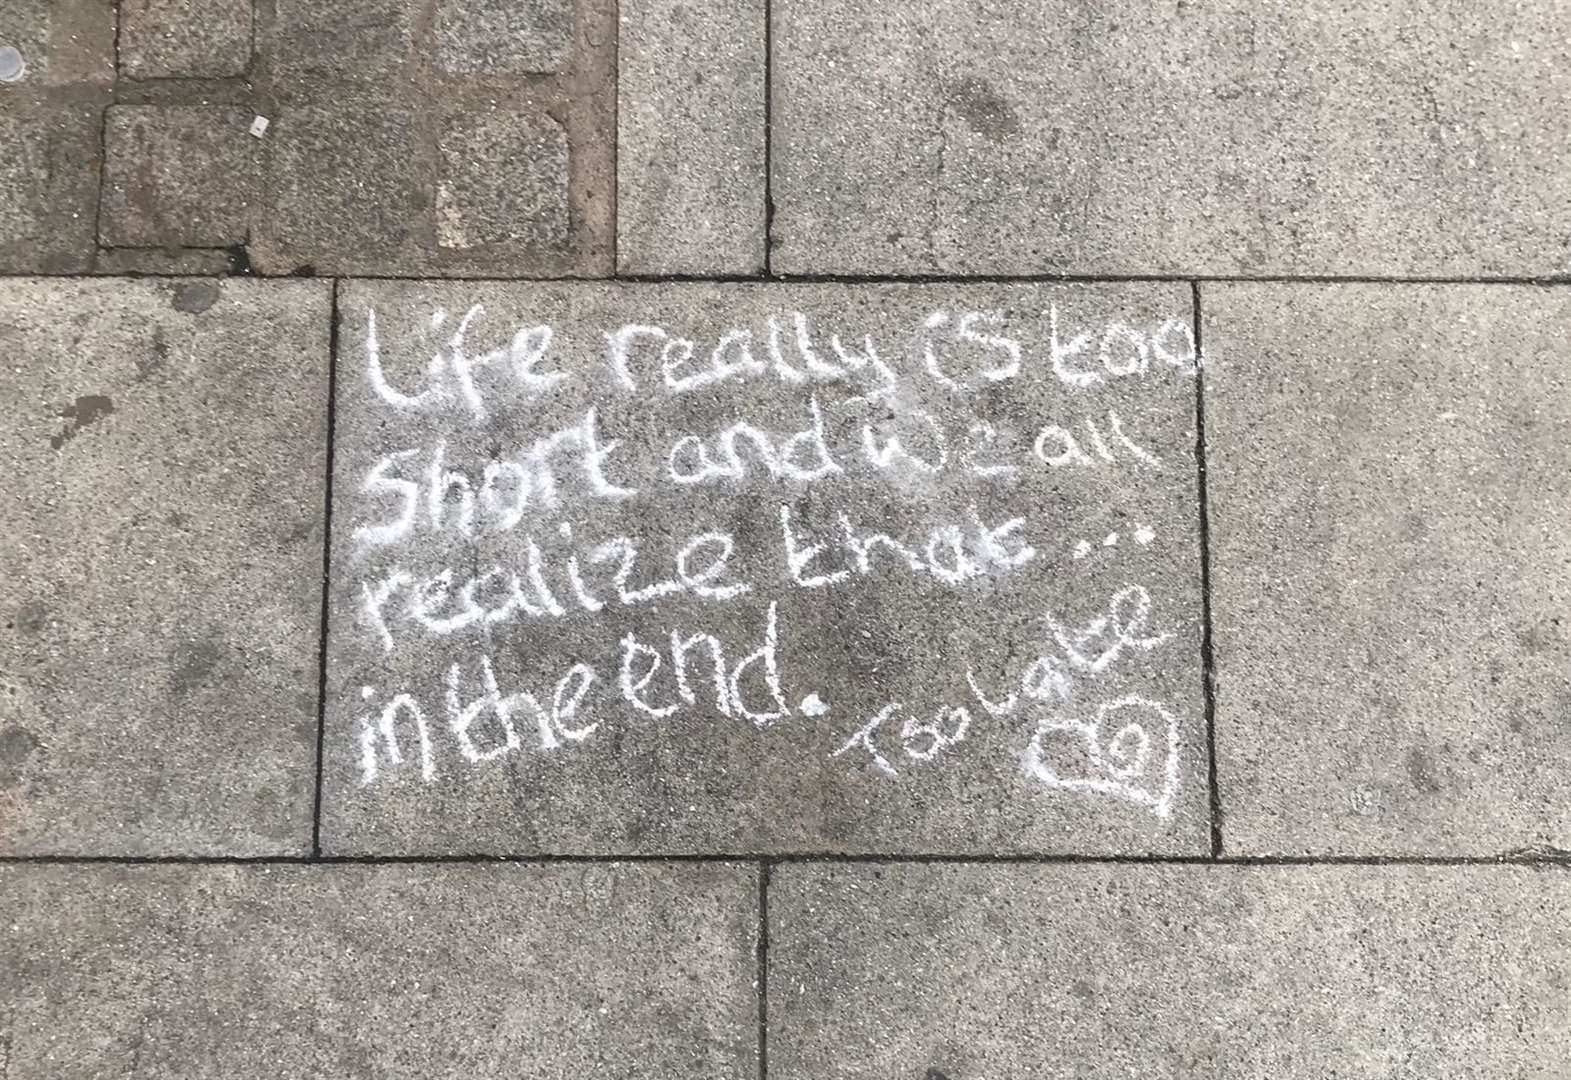 Mystery messages scribbled around town